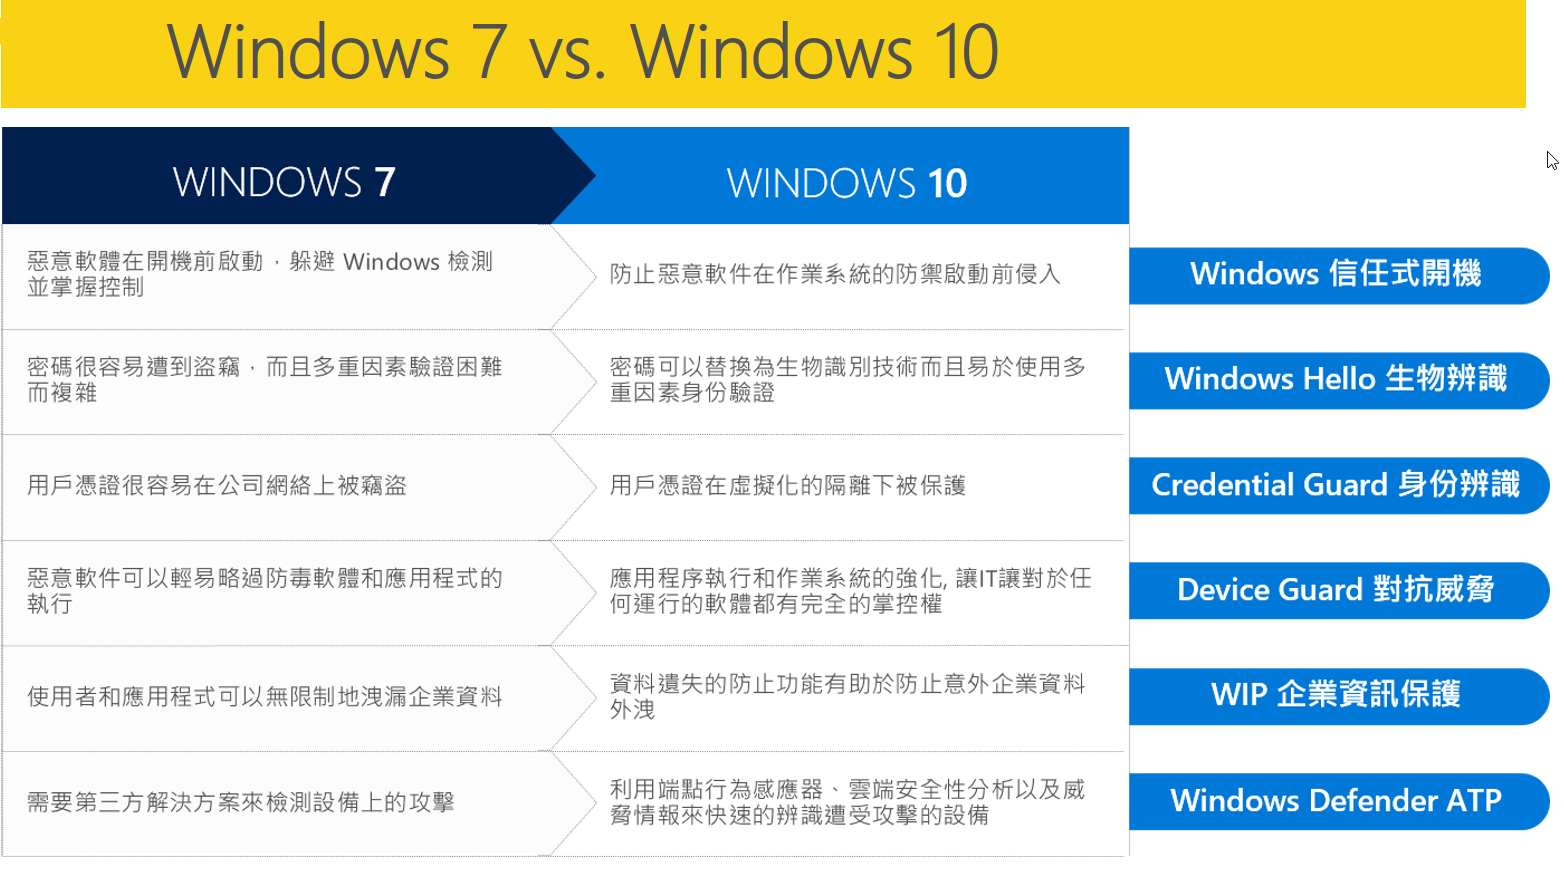 windows7和windows10比較表